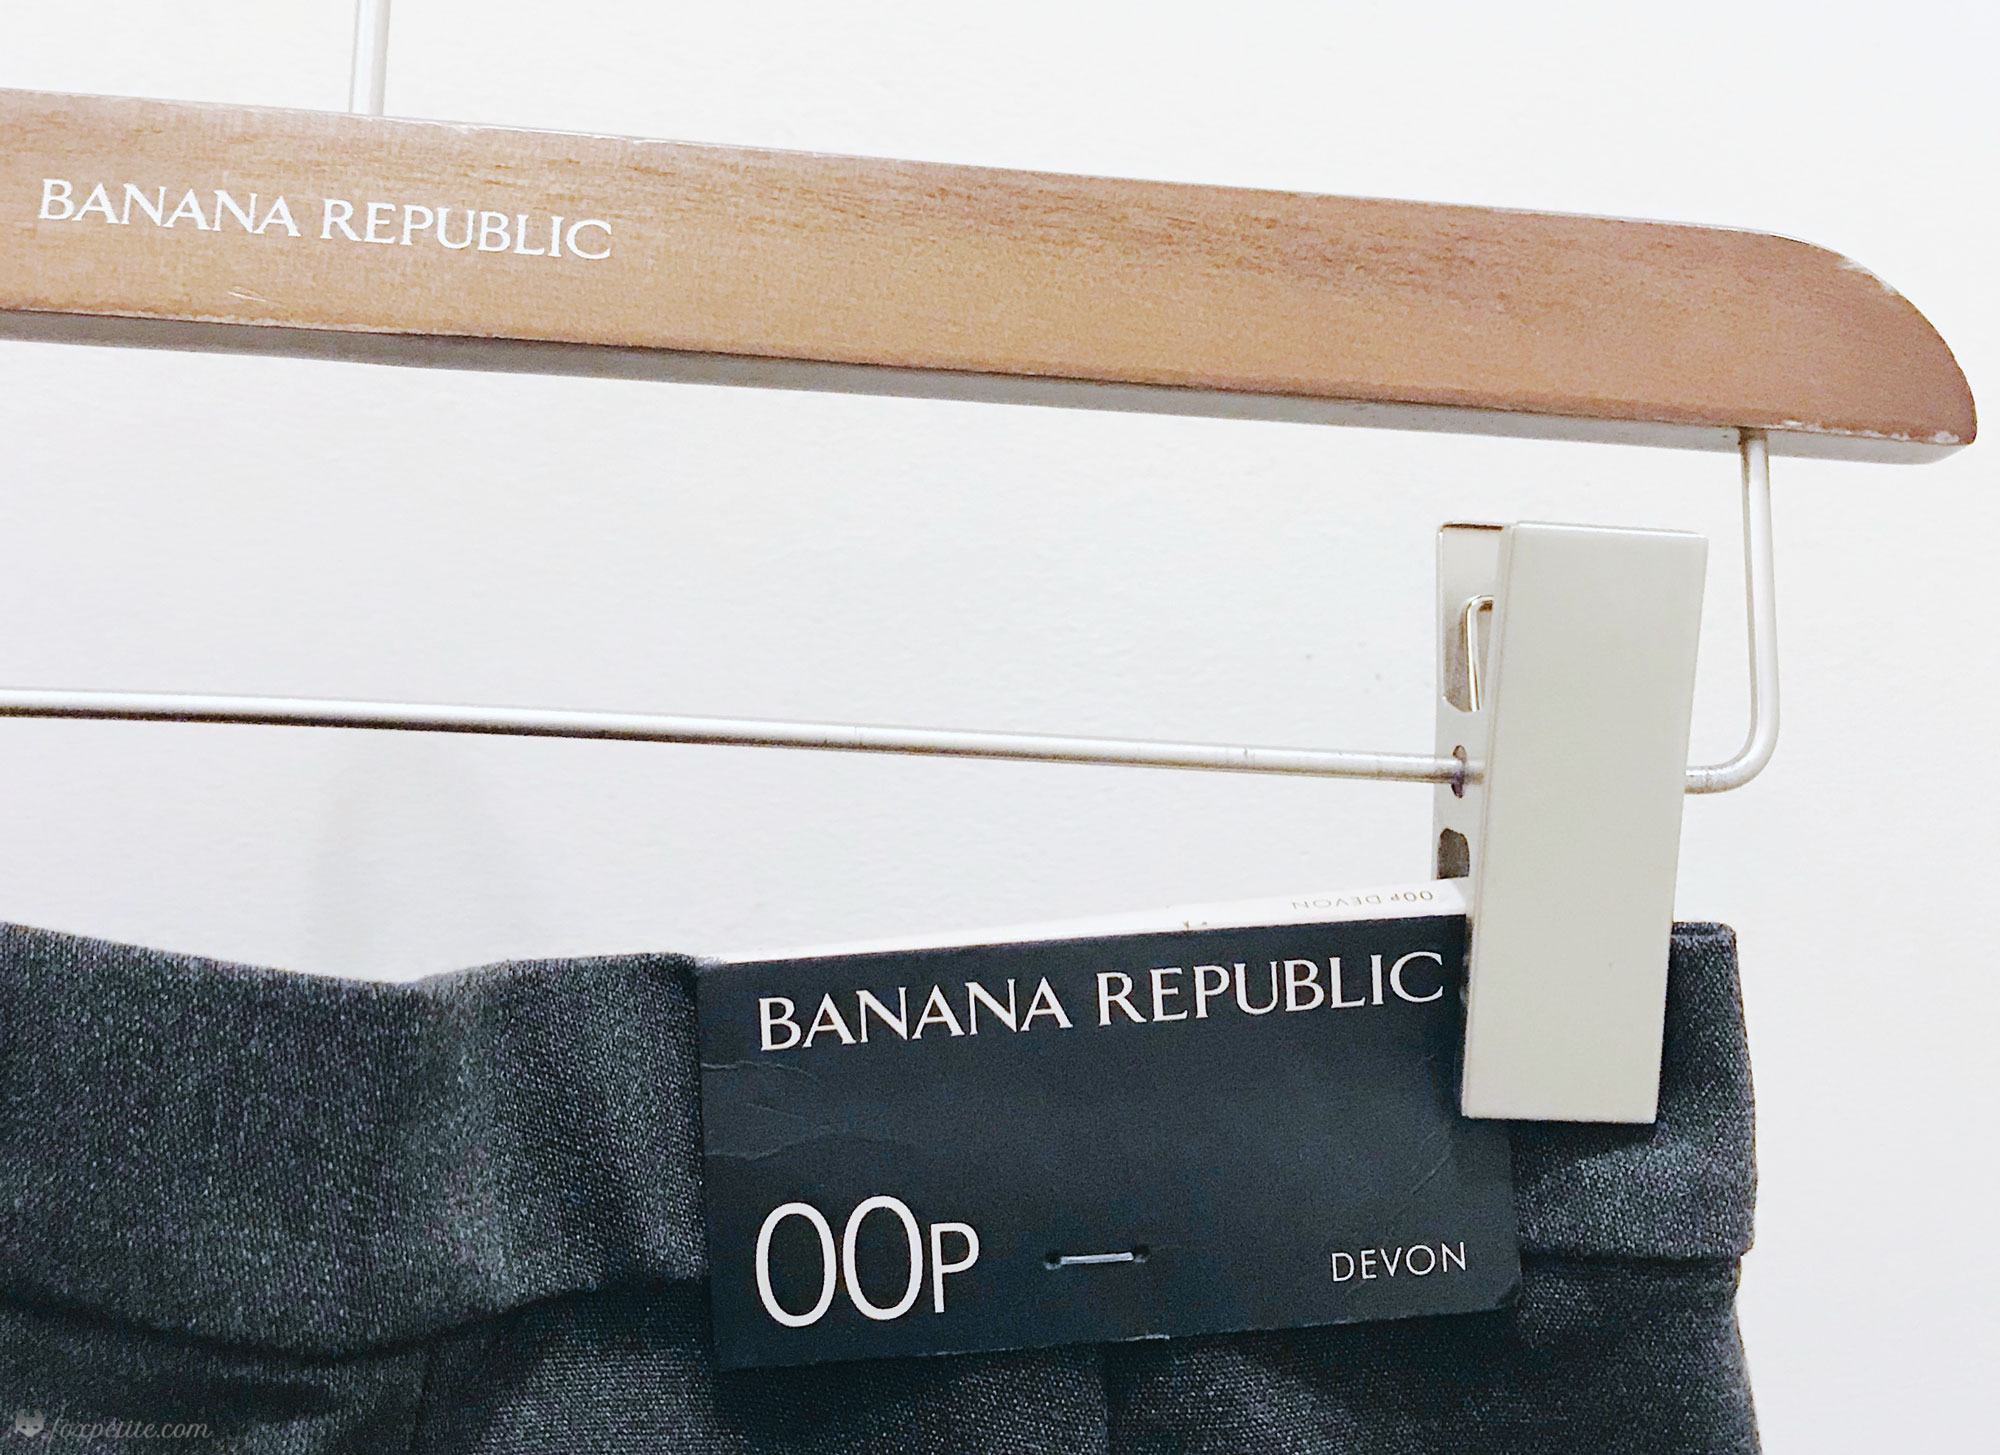 Banana Republic Petites try-on | blogger Fox Petite dressing room photos | #bananarepublic #tryon